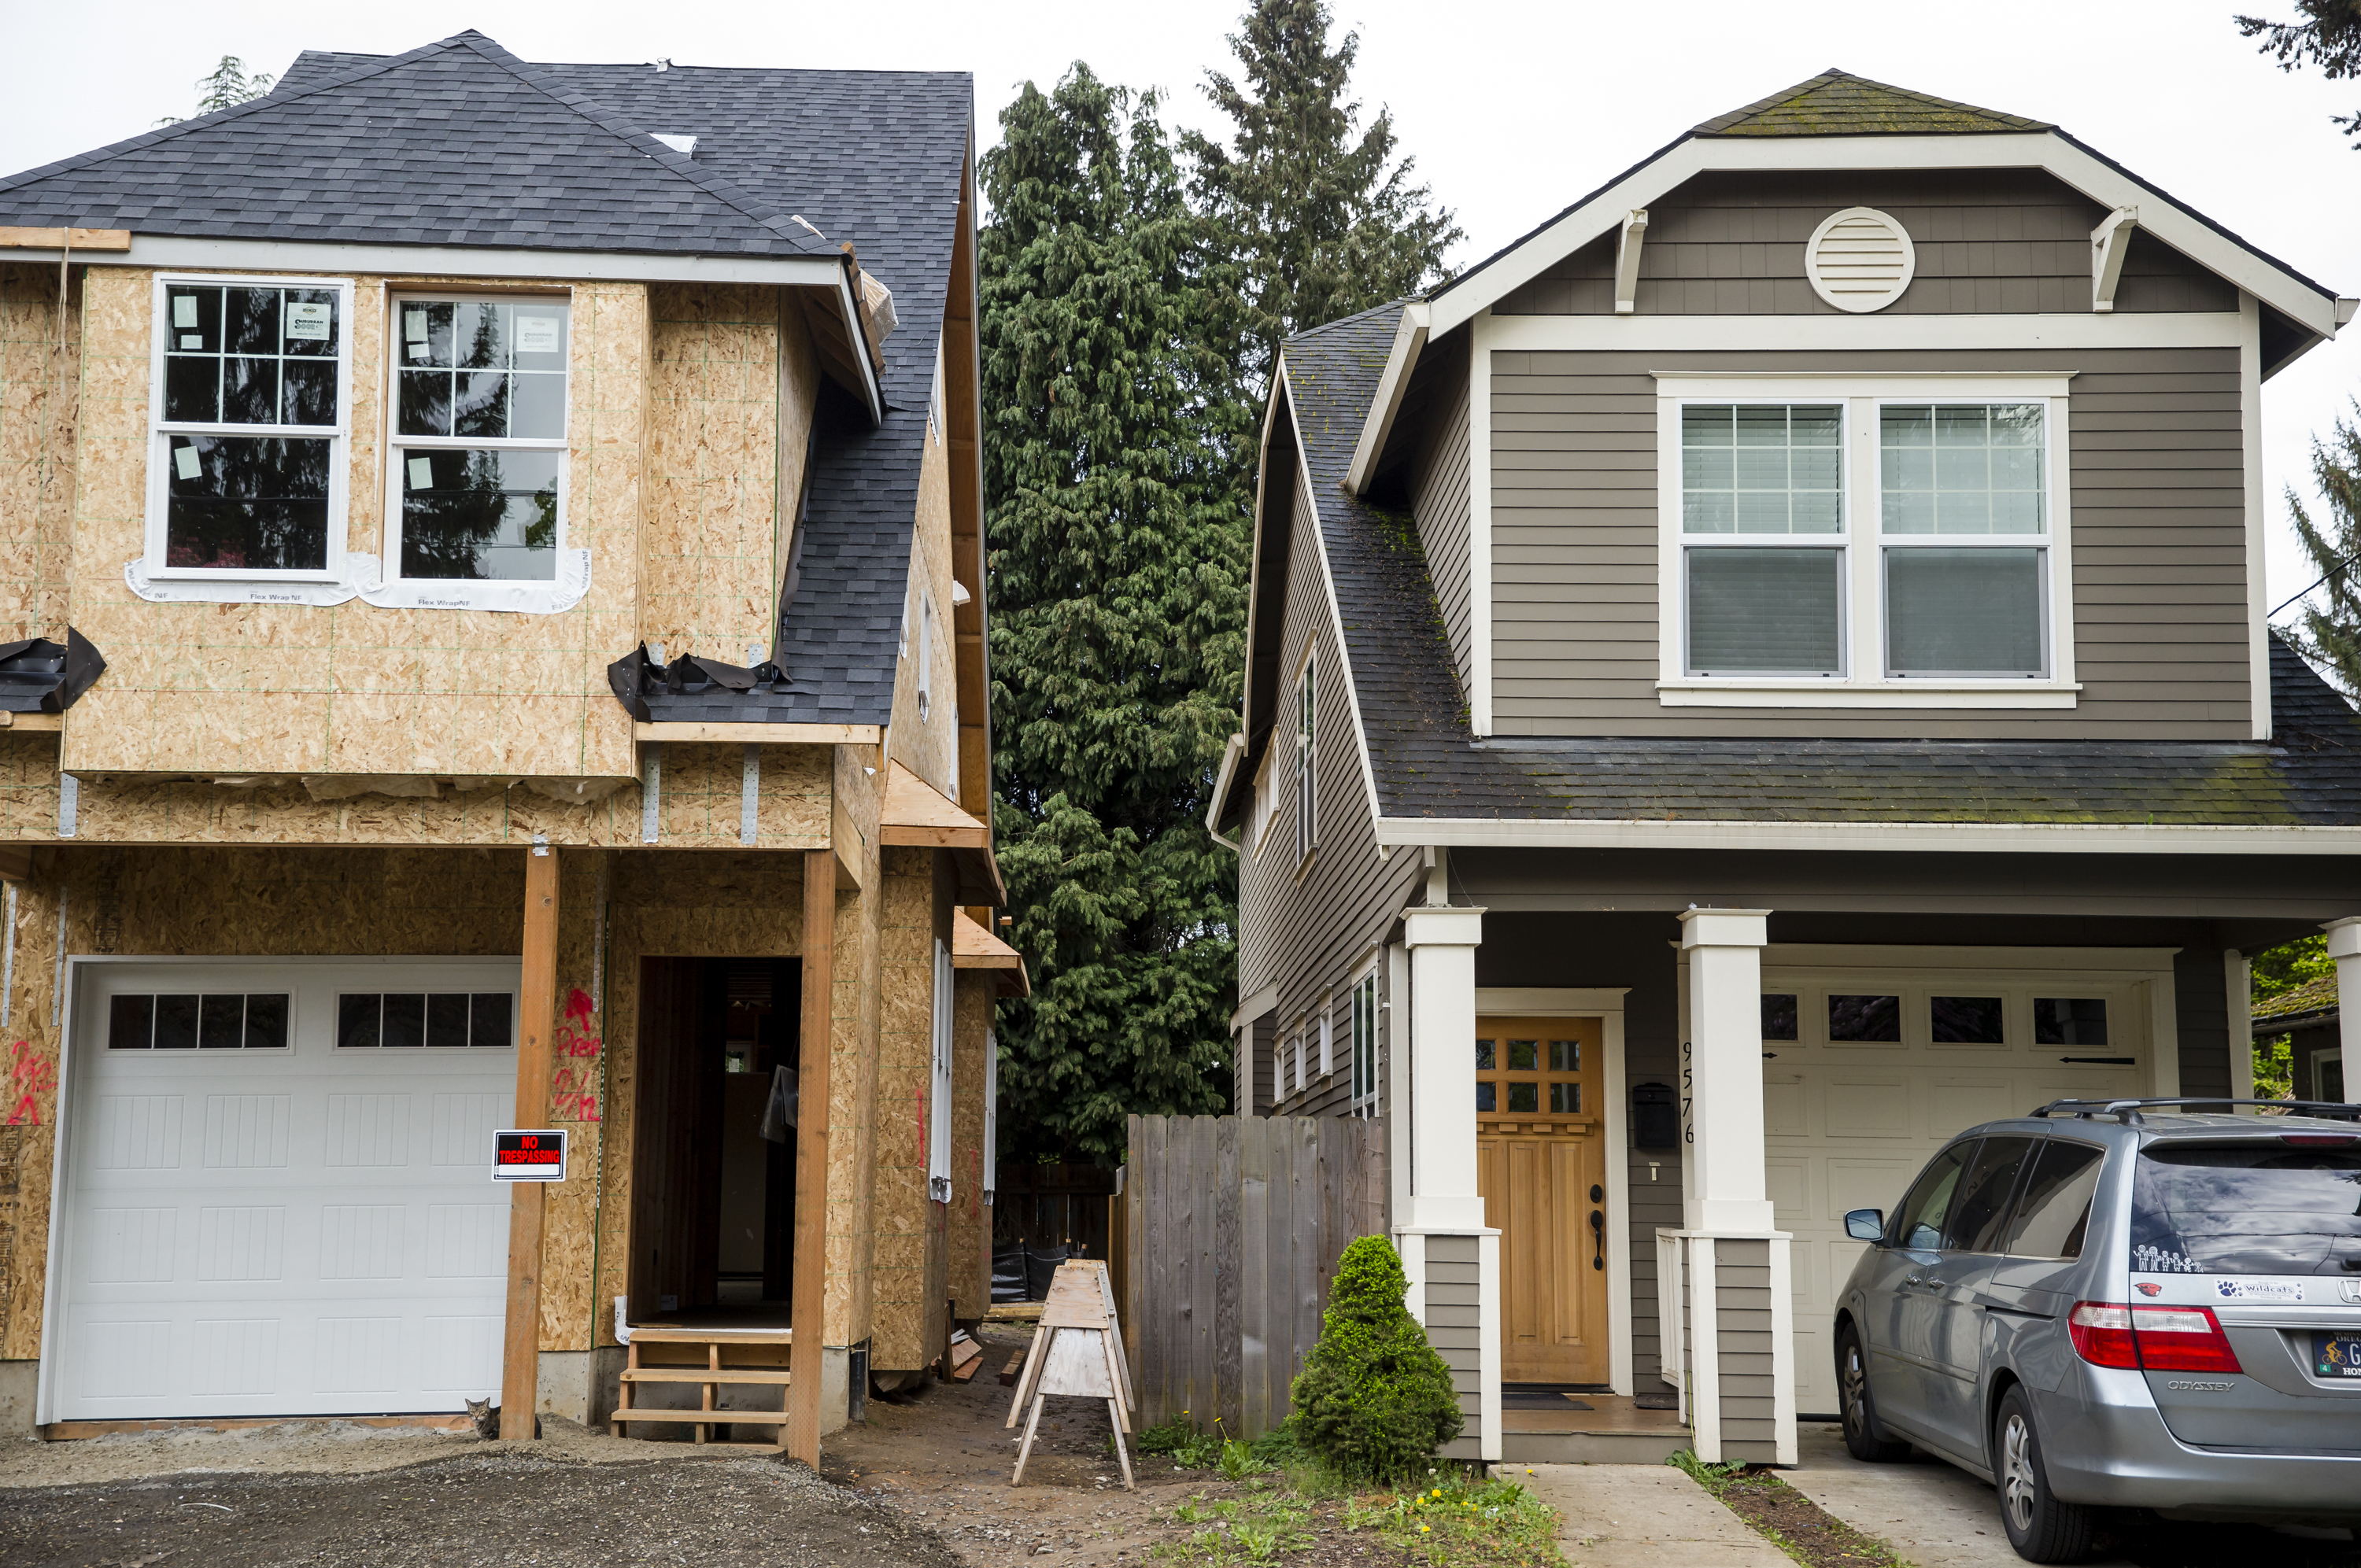 A benchmark of housing affordability solutions for Portland